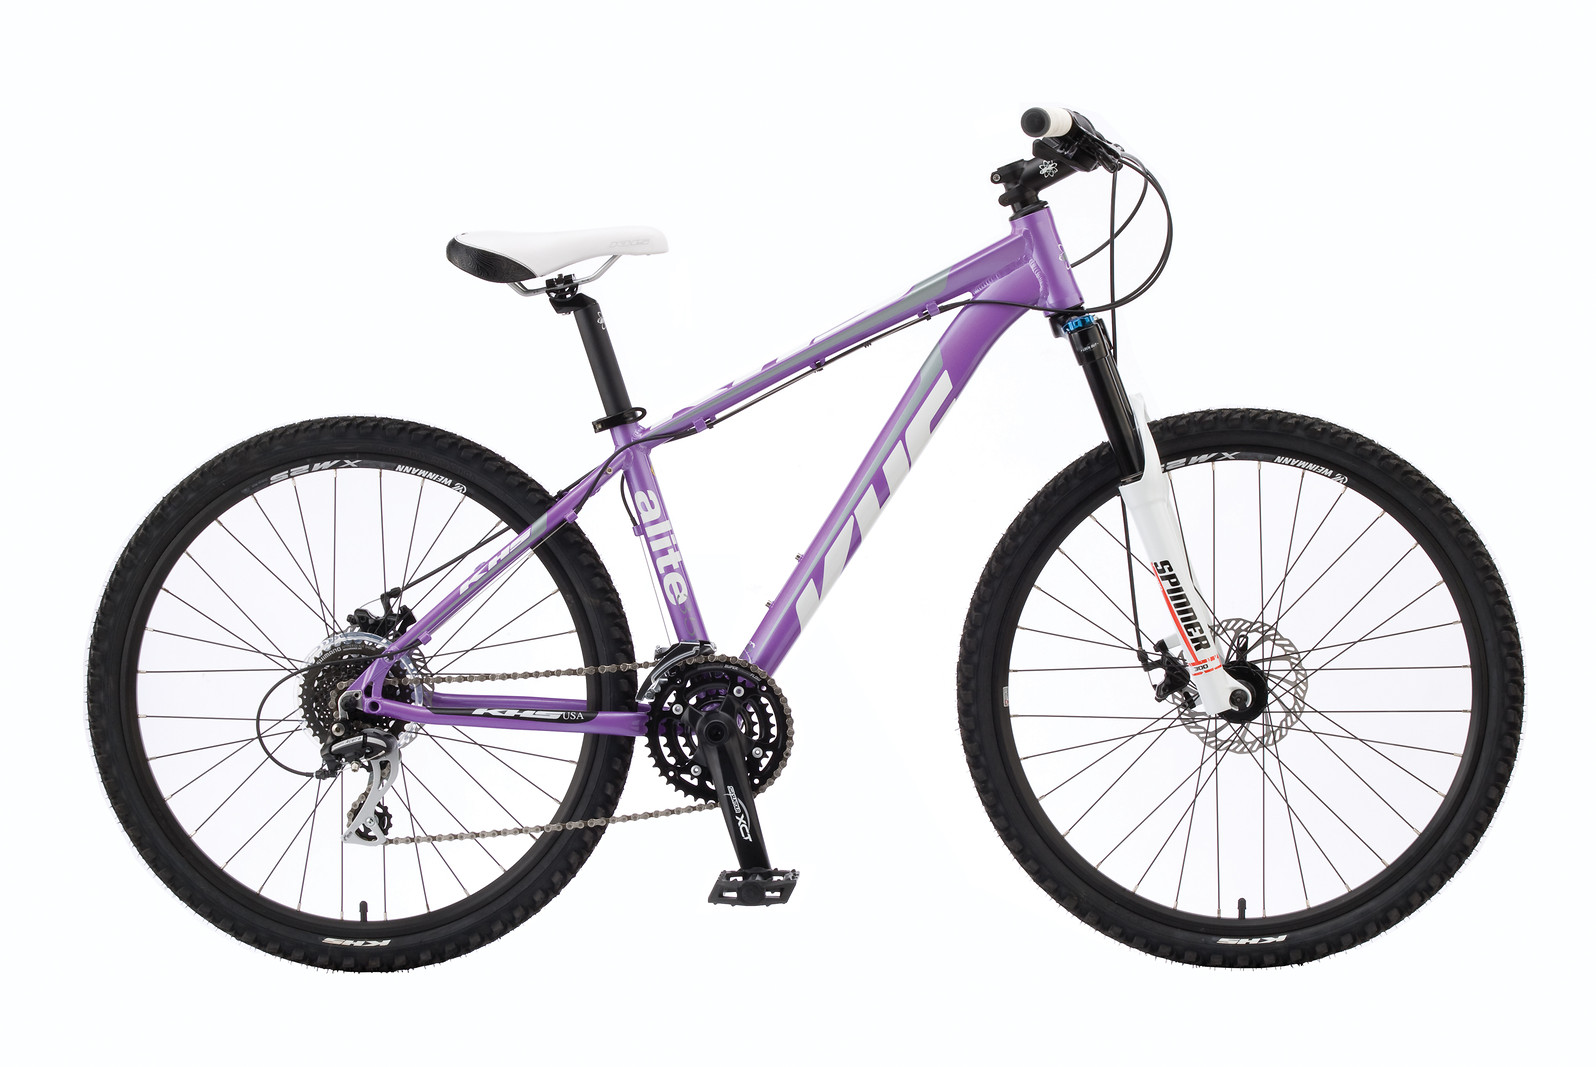 2013 KHS Alite 350 Ladies Bike 2013 Alite 350 Ladies - Purple